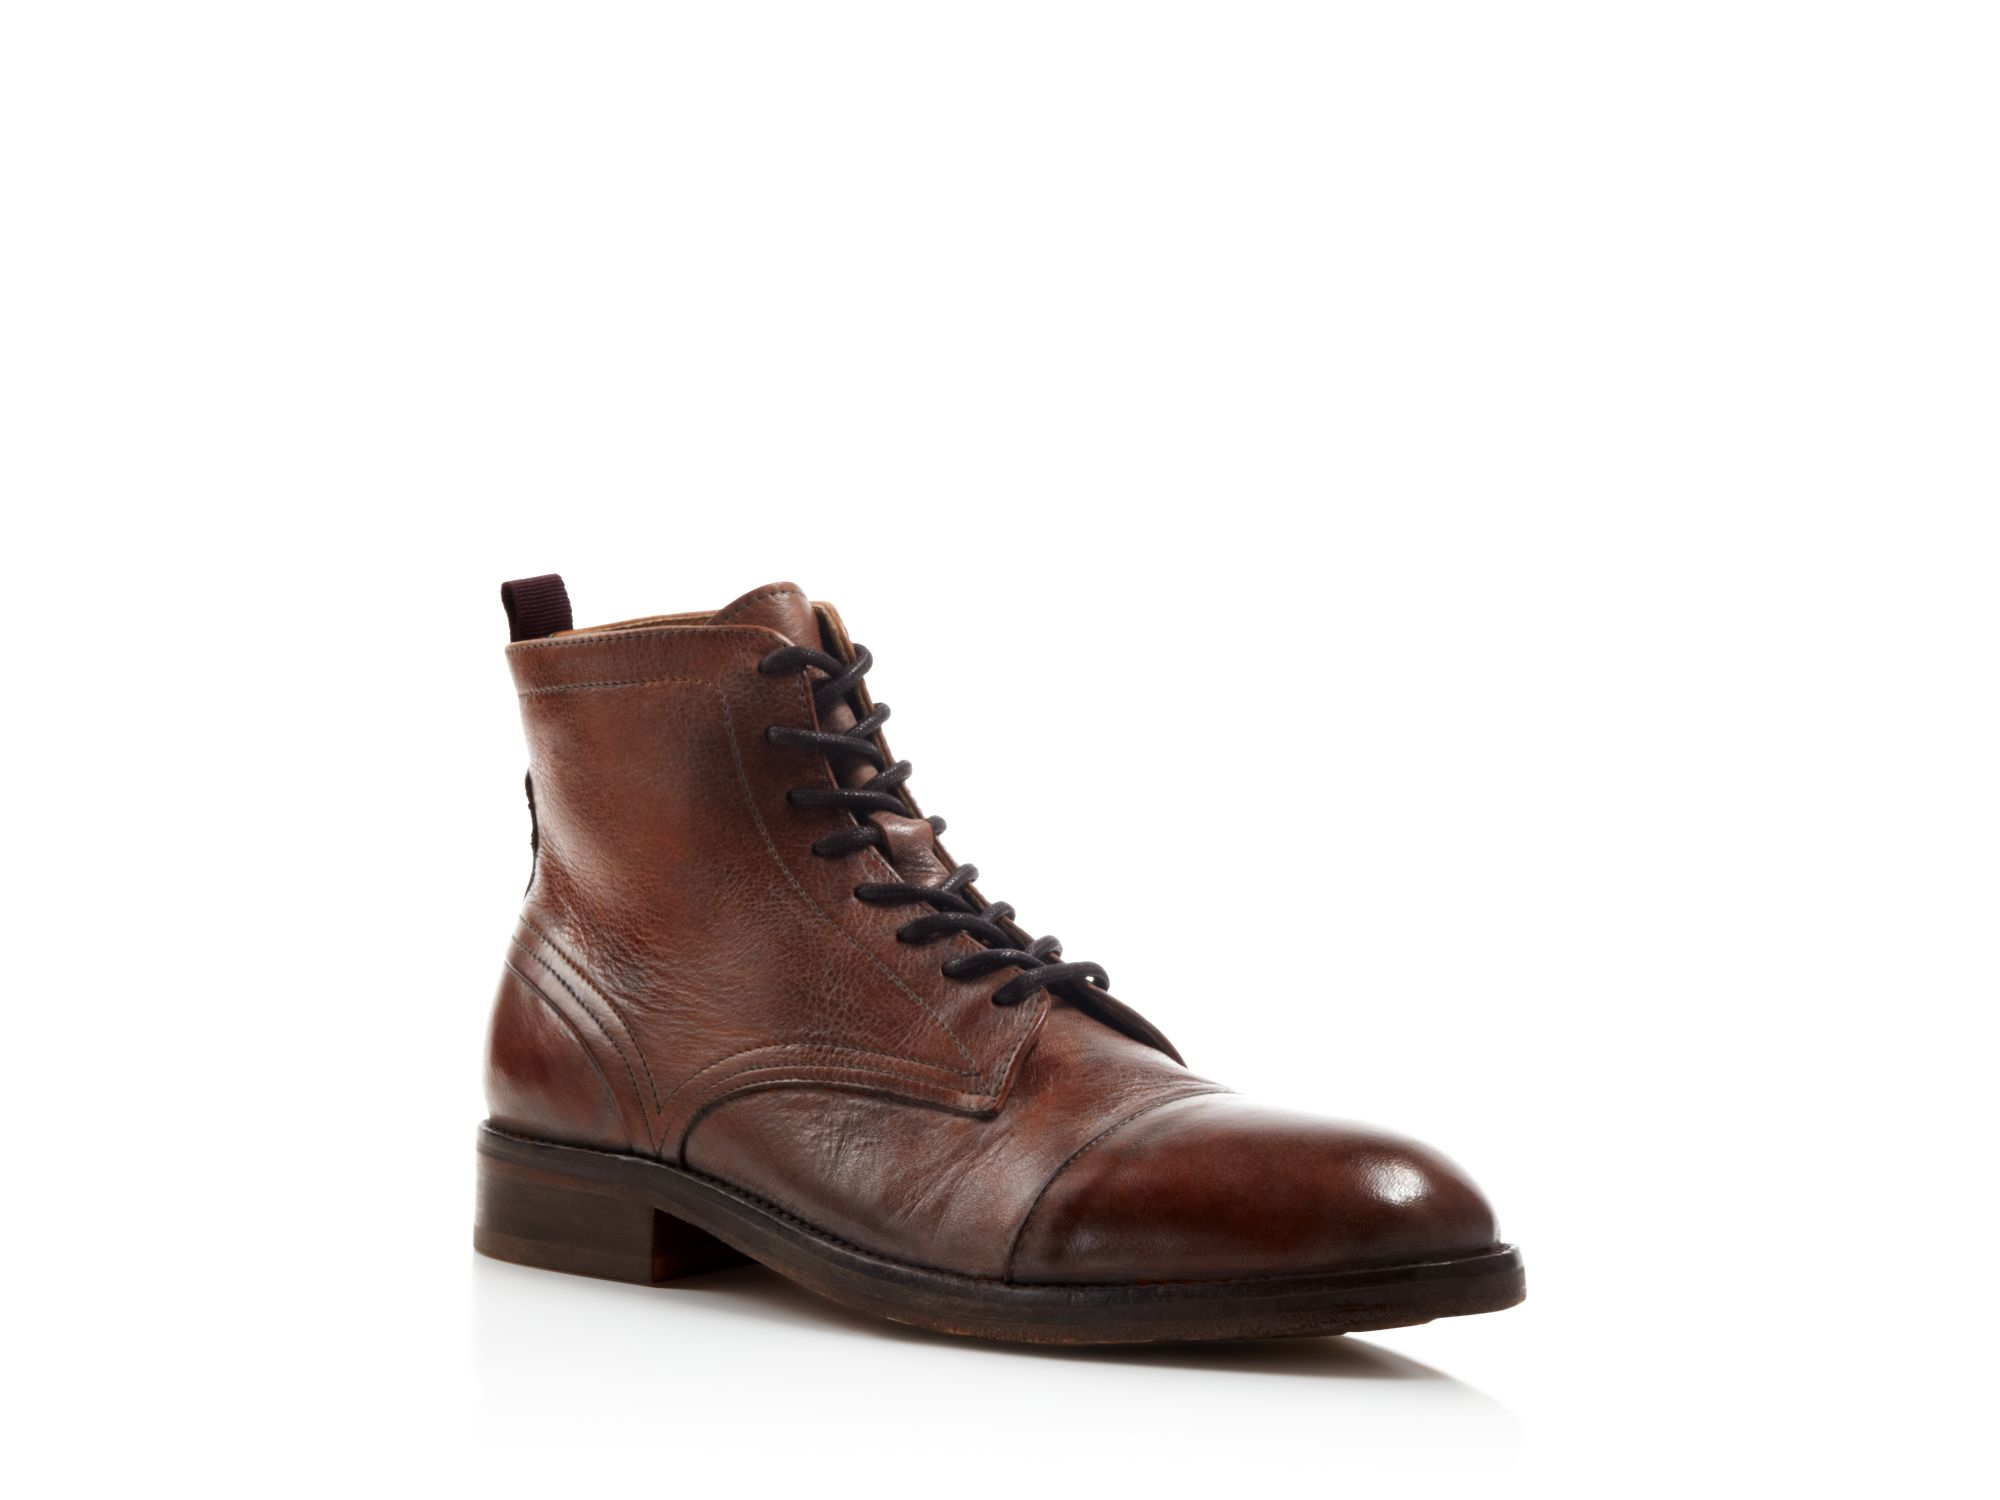 h by hudson palmer cap toe boots in brown lyst